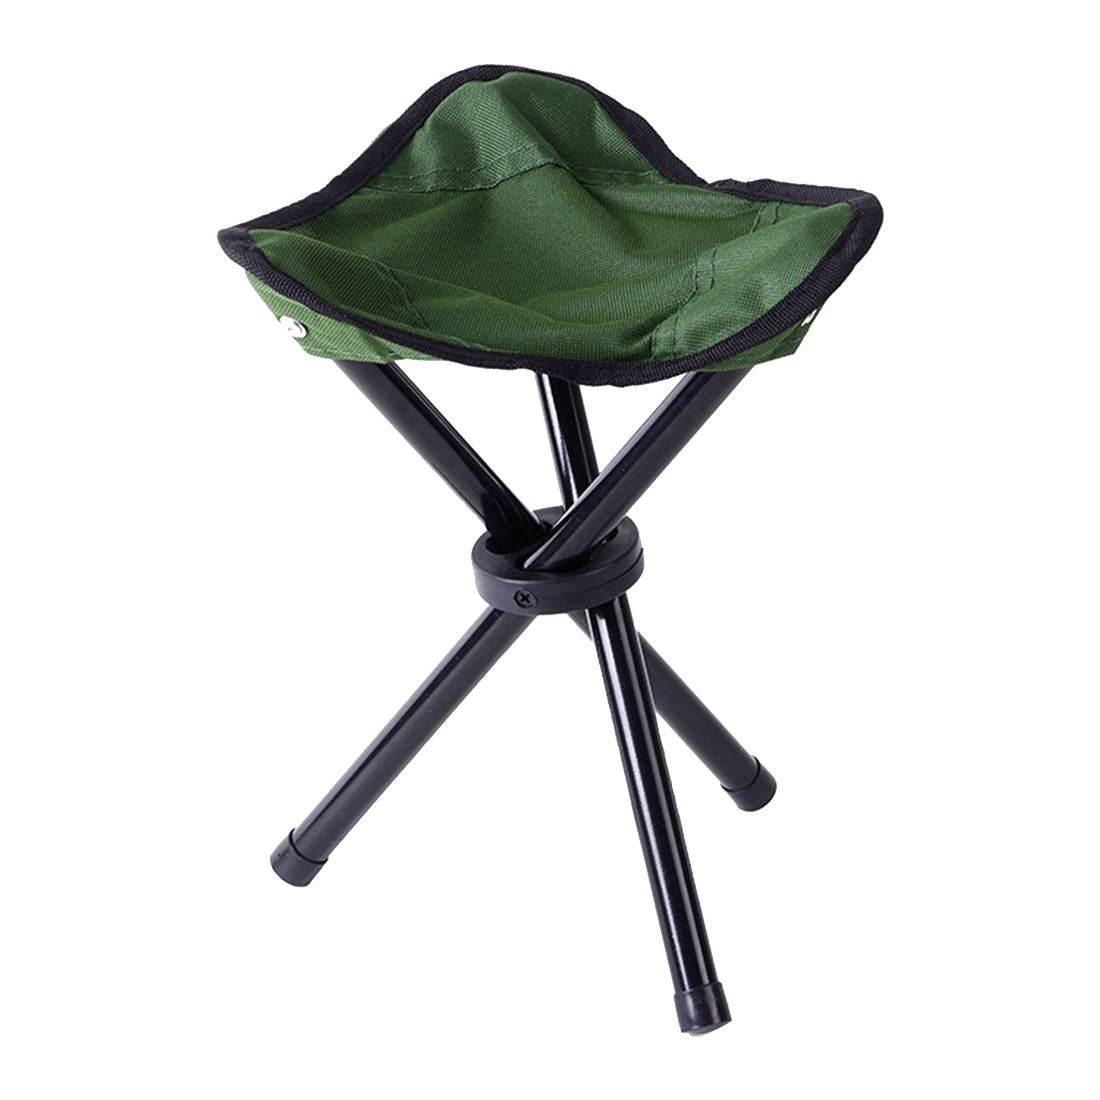 Marvelous Folding Tripod Stool Outdoor Portable Camping Seat Lightweight Fishing Chair New Inzonedesignstudio Interior Chair Design Inzonedesignstudiocom